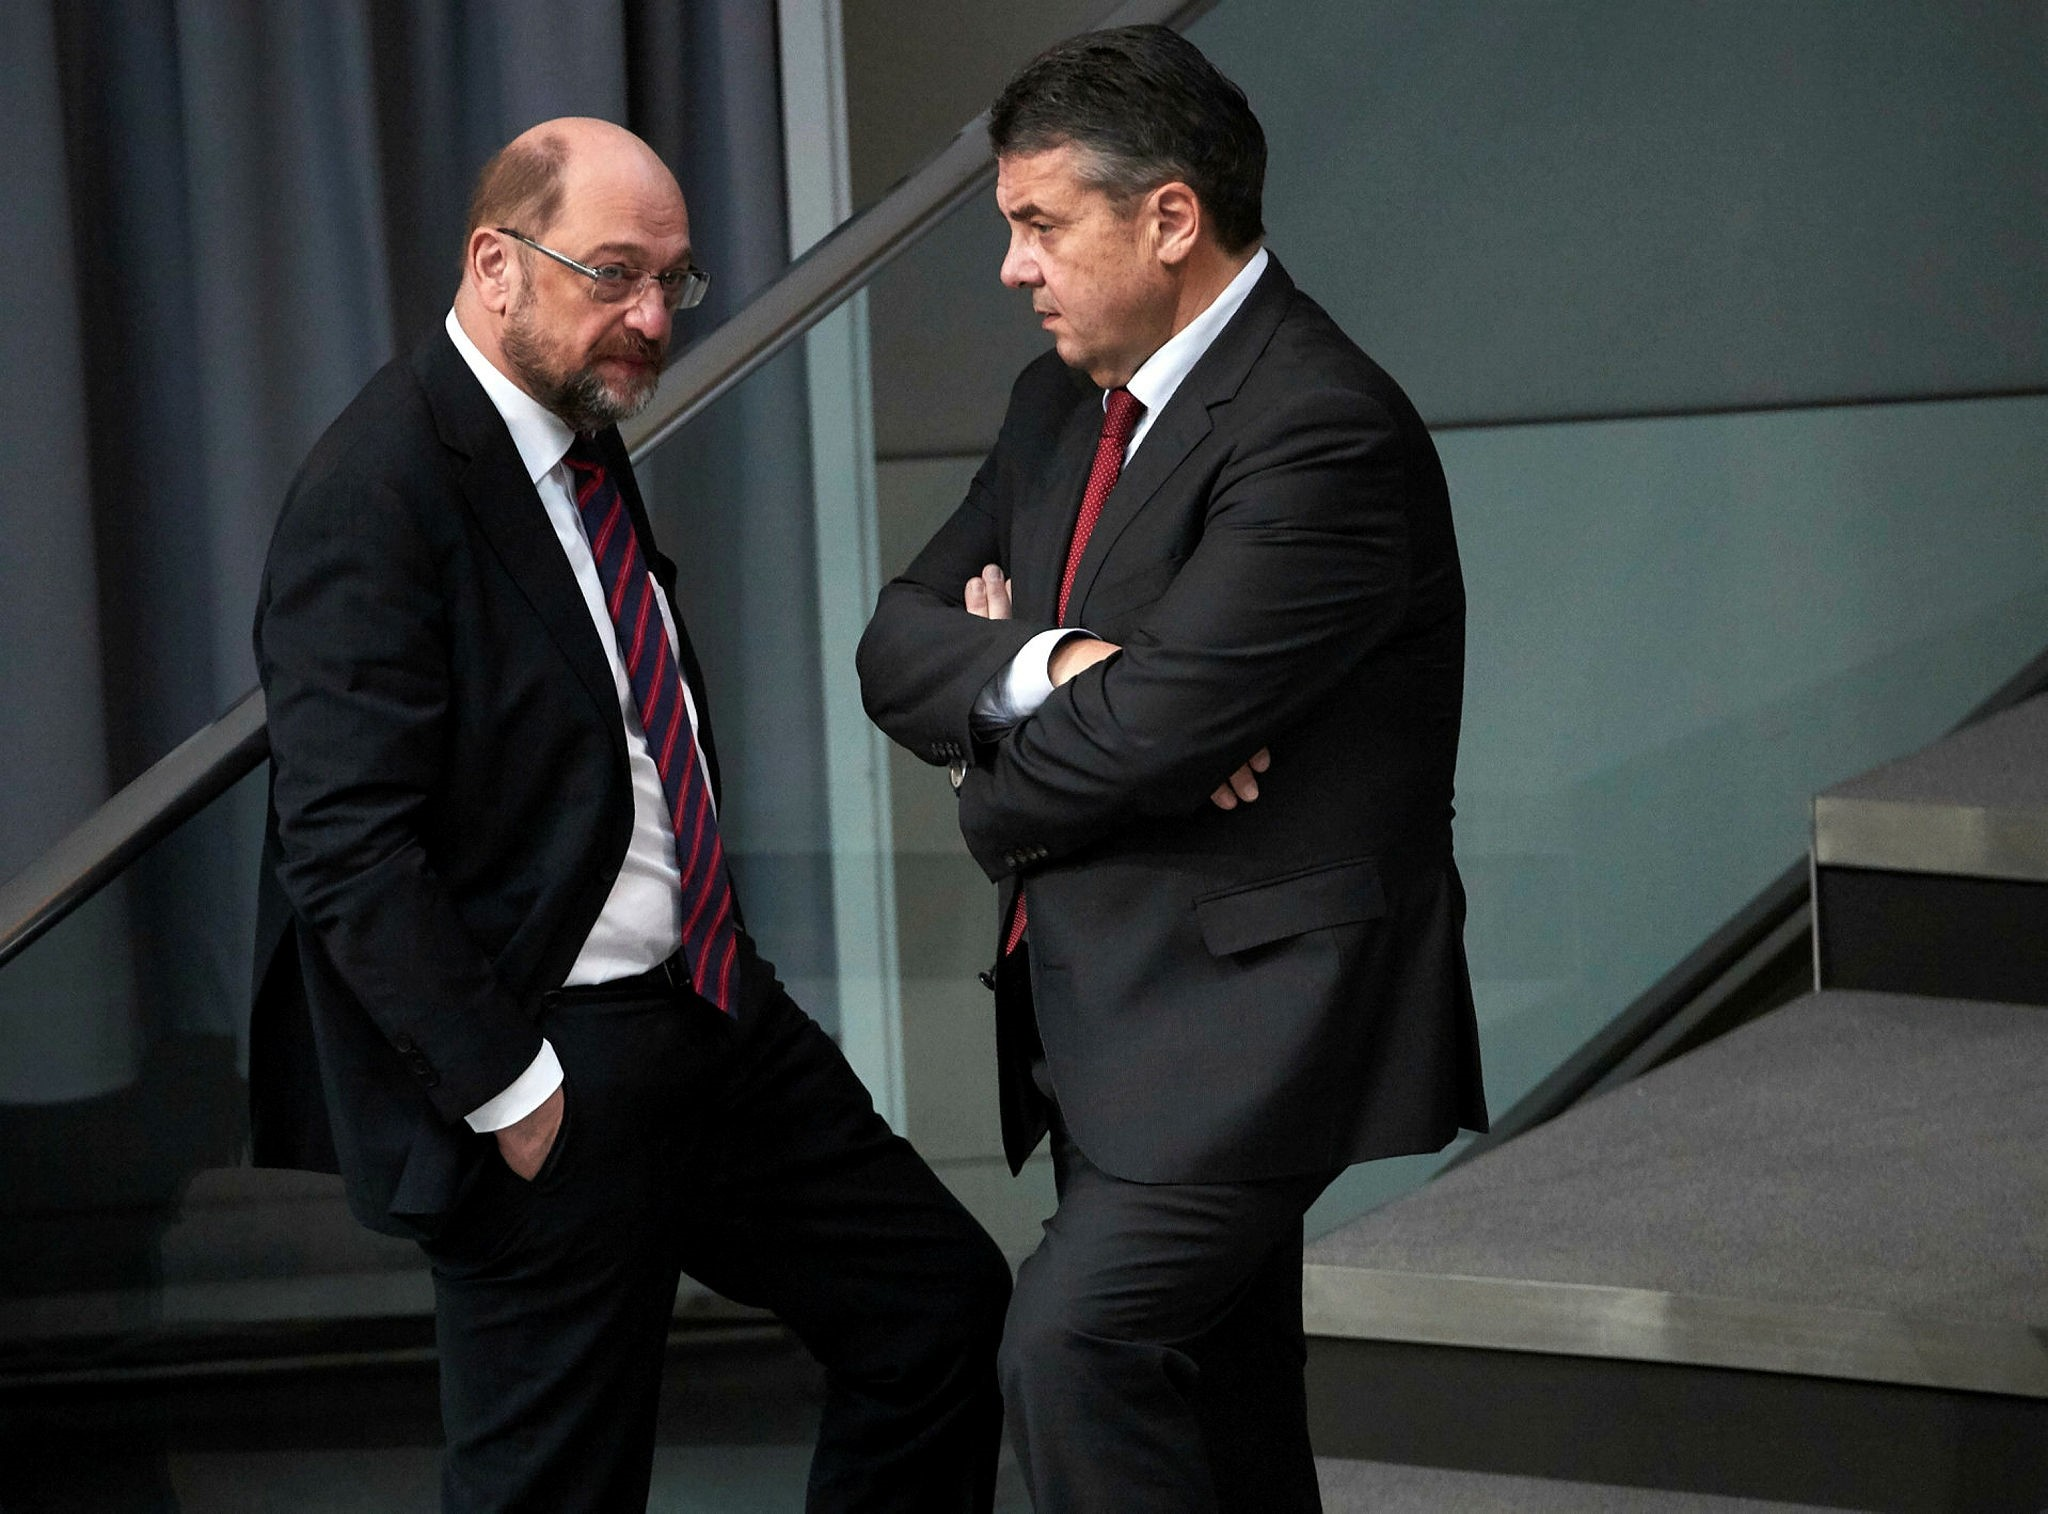 German Foreign Minister Sigmar Gabriel (R) and the leader of the Social Democratic Party (SPD) Martin Schulz (L) speak during a session of German parliament, Berlin, Feb. 1.